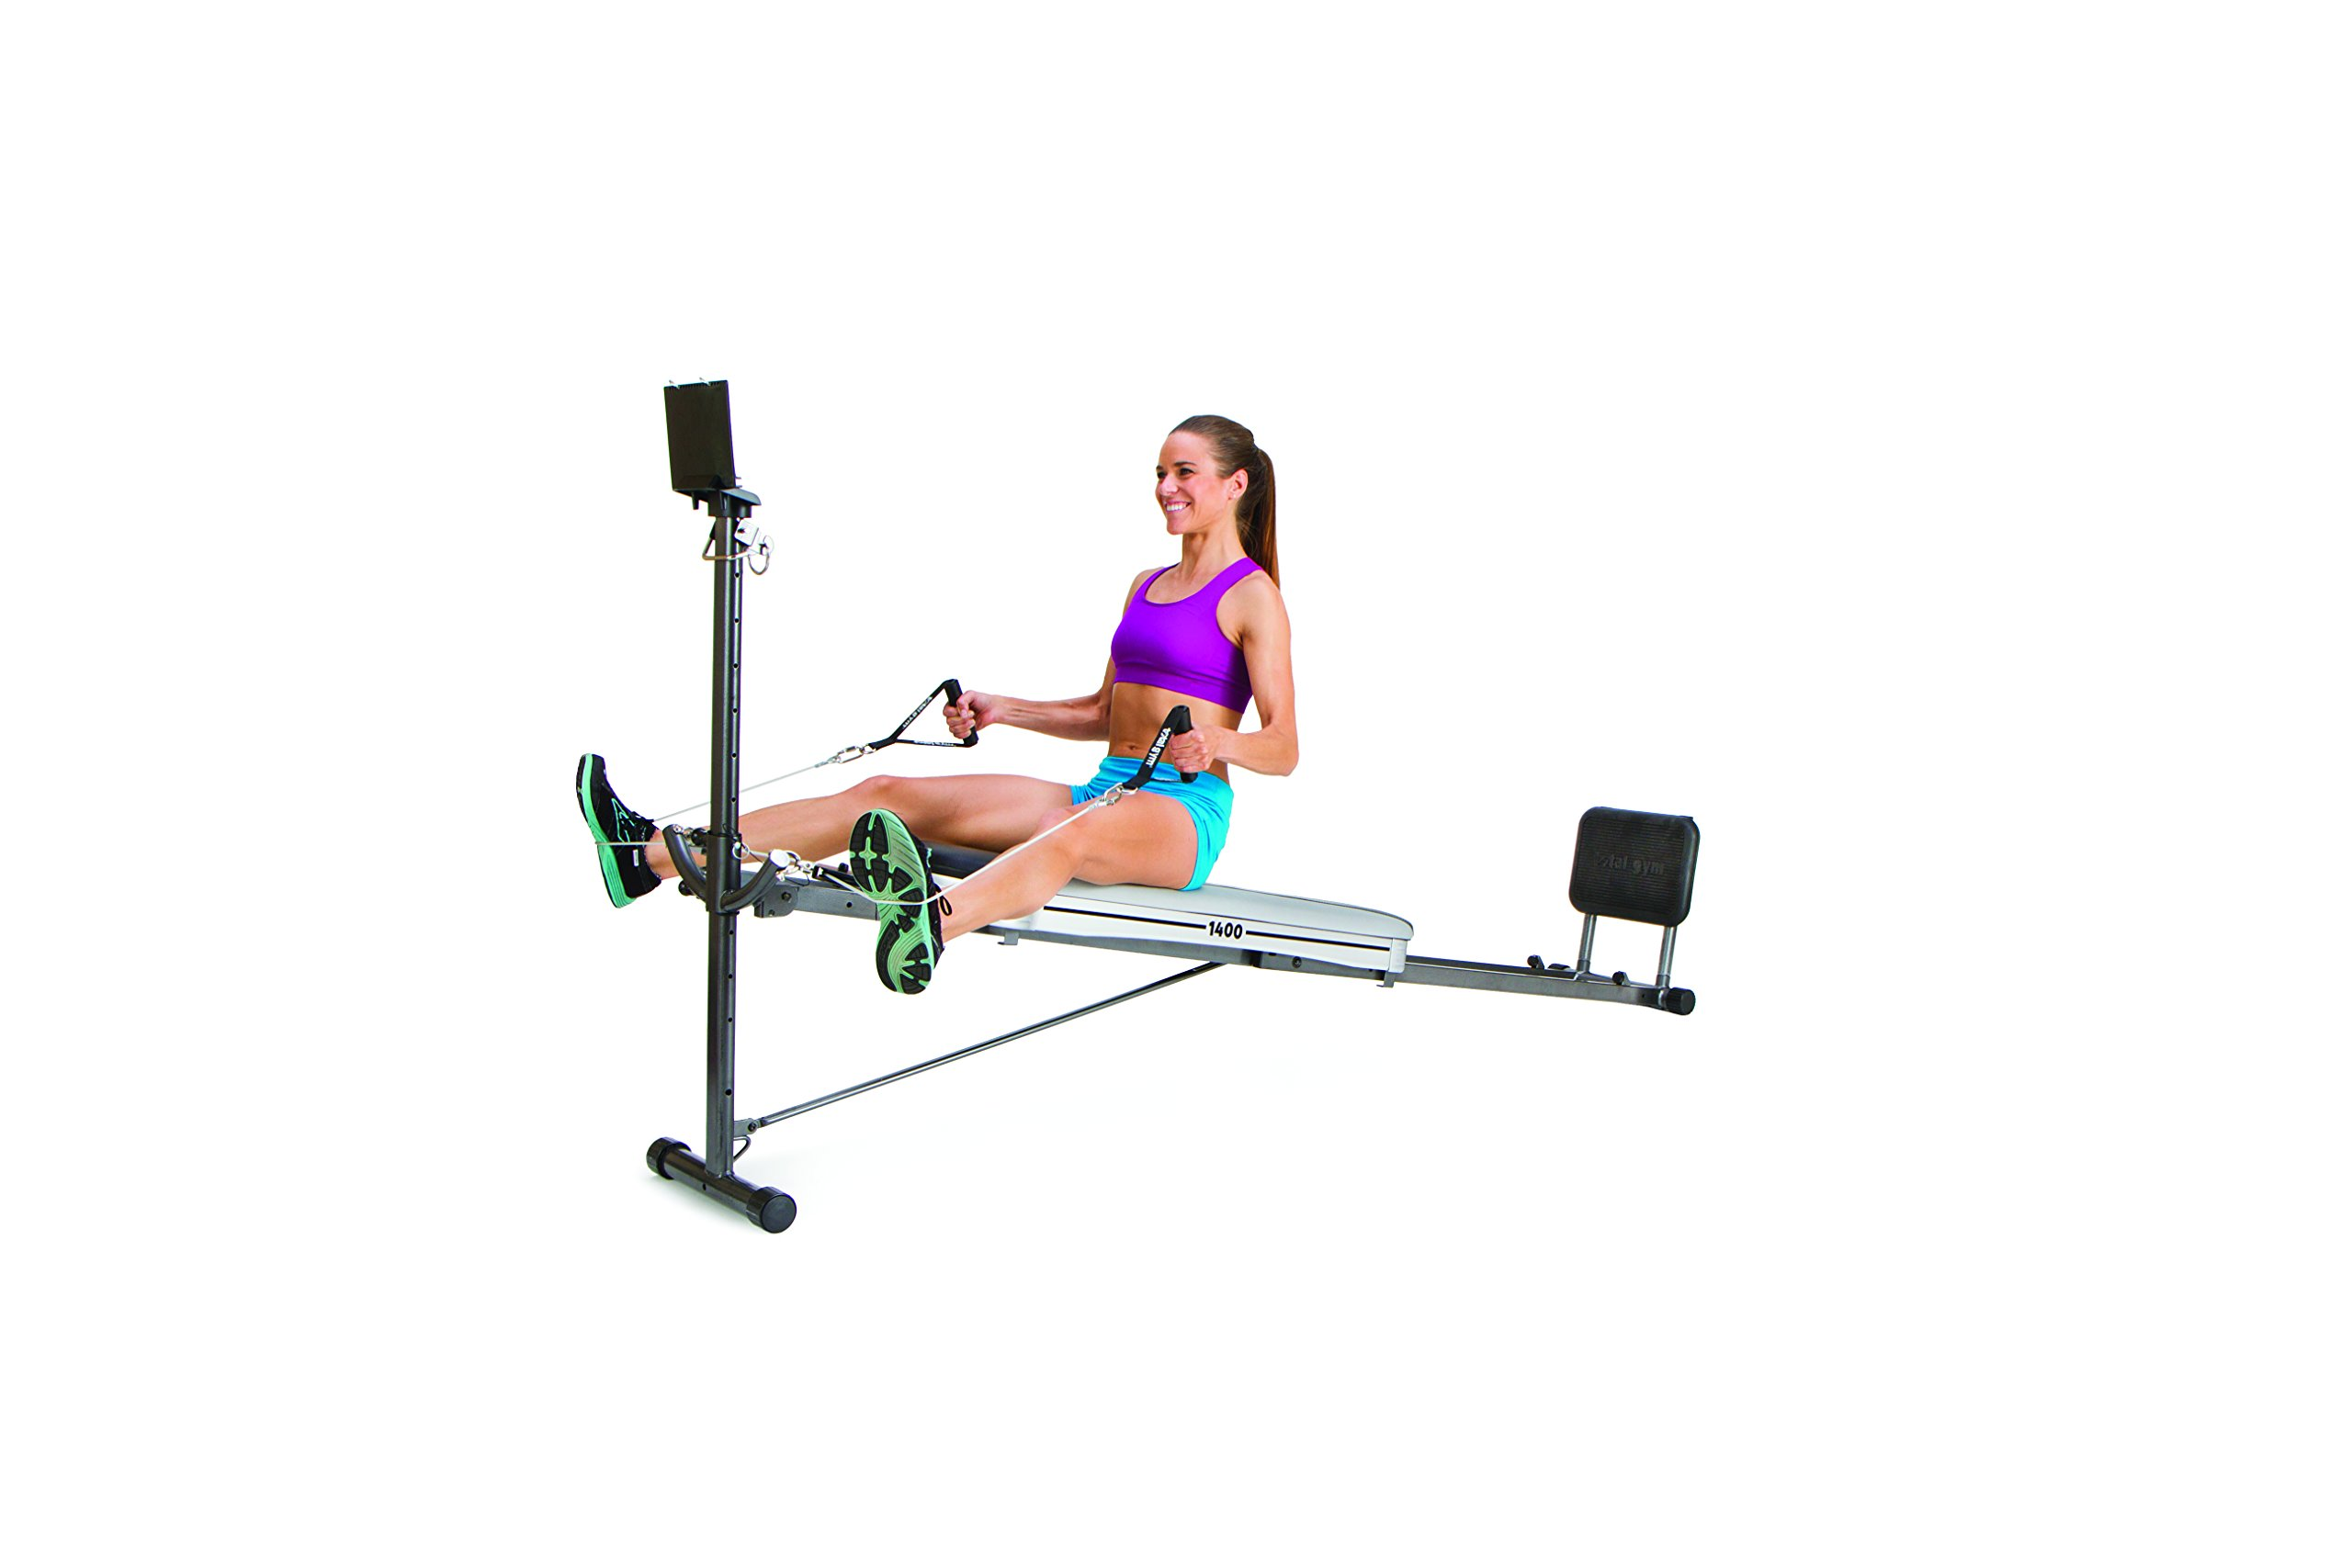 Total Gym 1400 Leg Exercise Machines by Total Gym (Image #4)